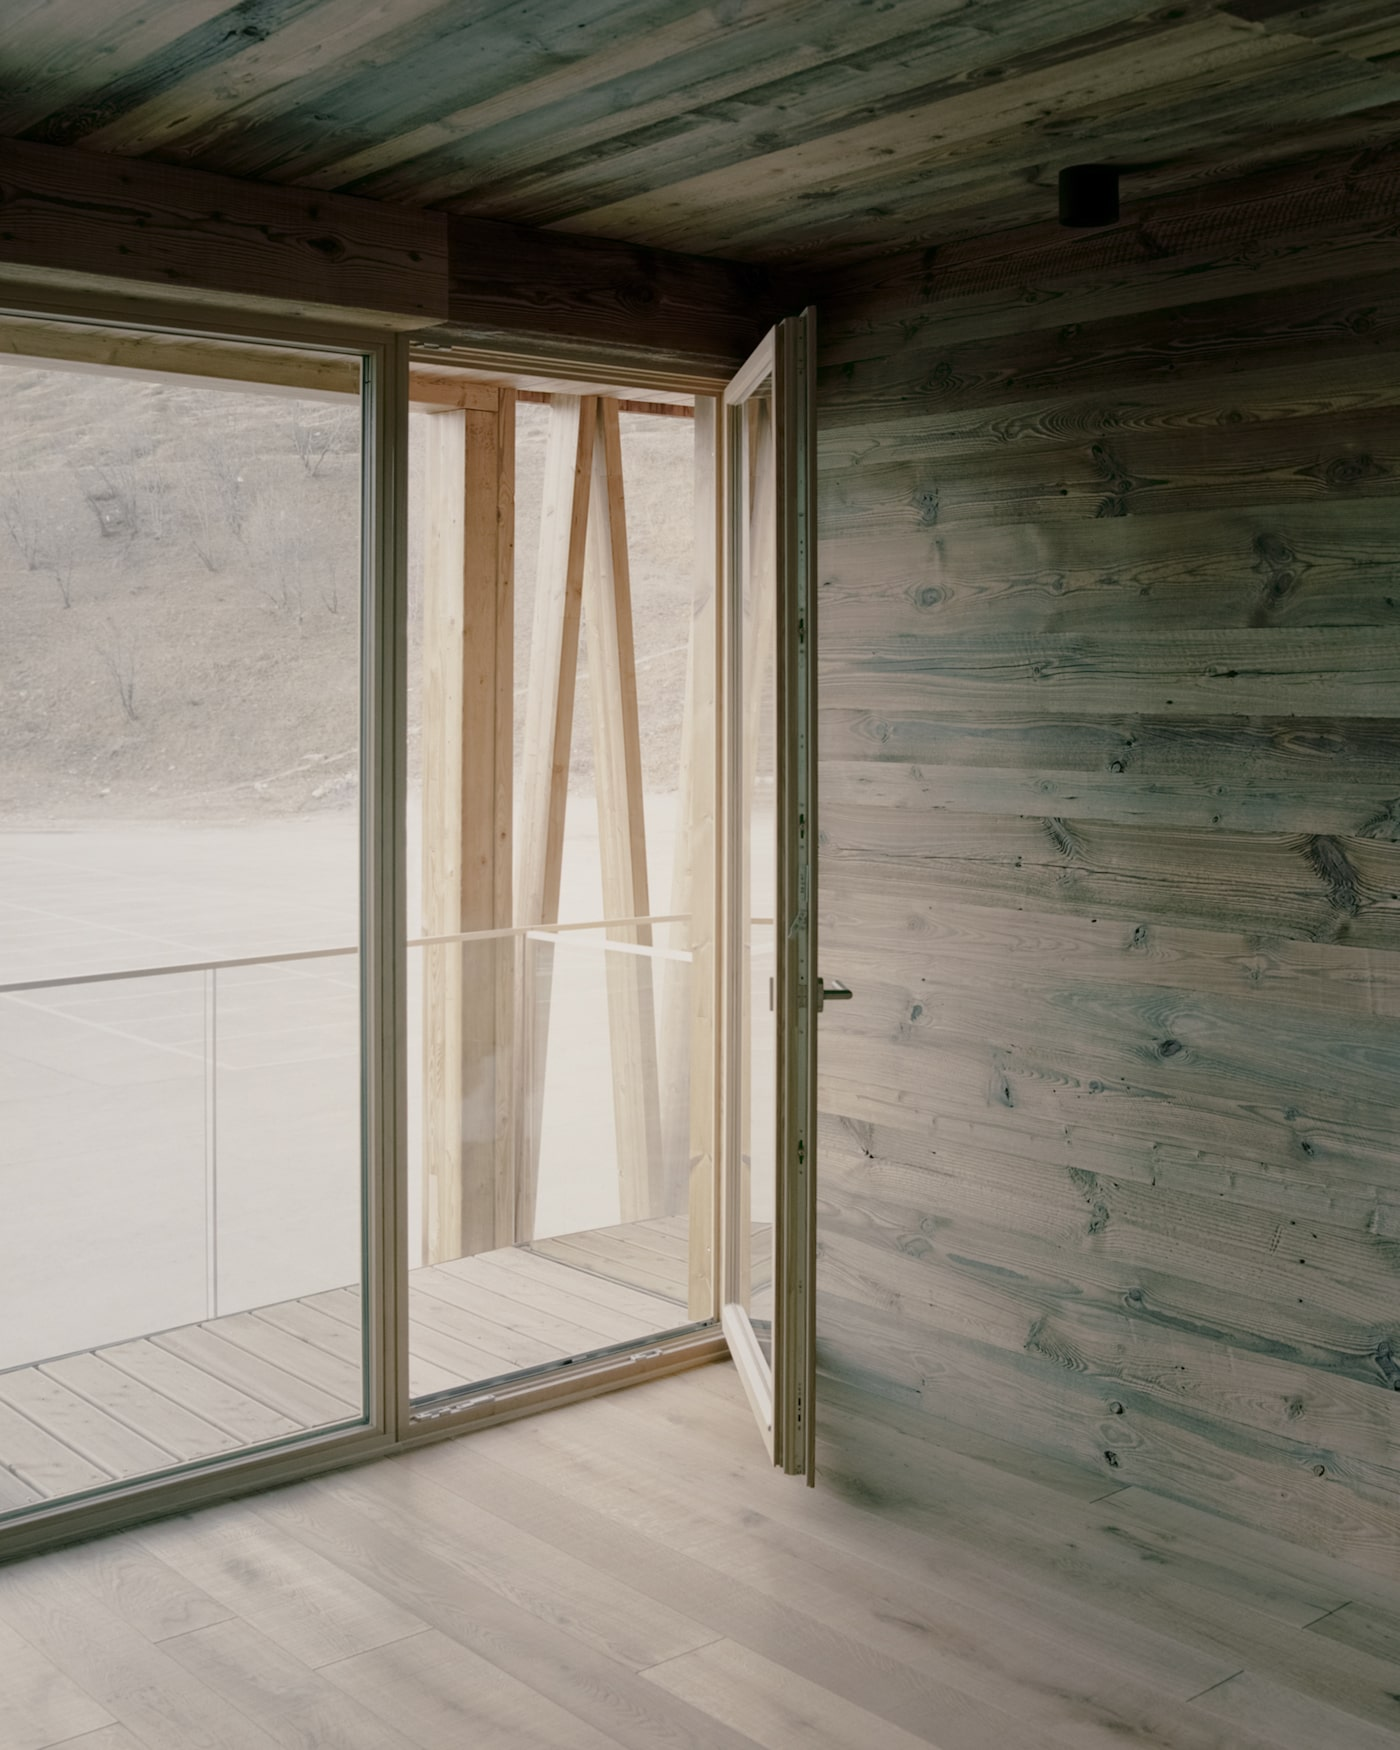 Timber lined walls and ceiling with timber flooring